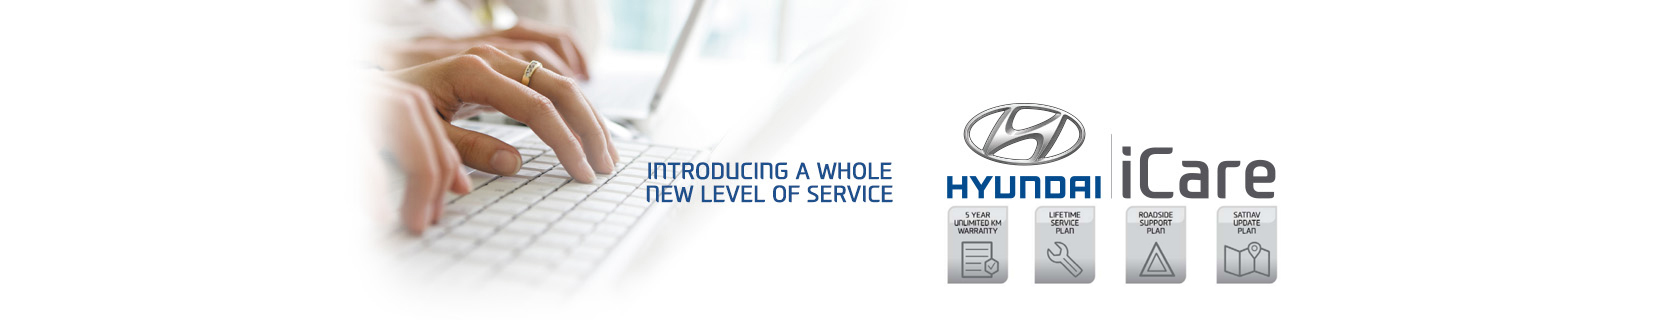 Hyundai iCare - 5 year unlimited km warranty, lifetime service plan, roadside support plan and satnav update plan.